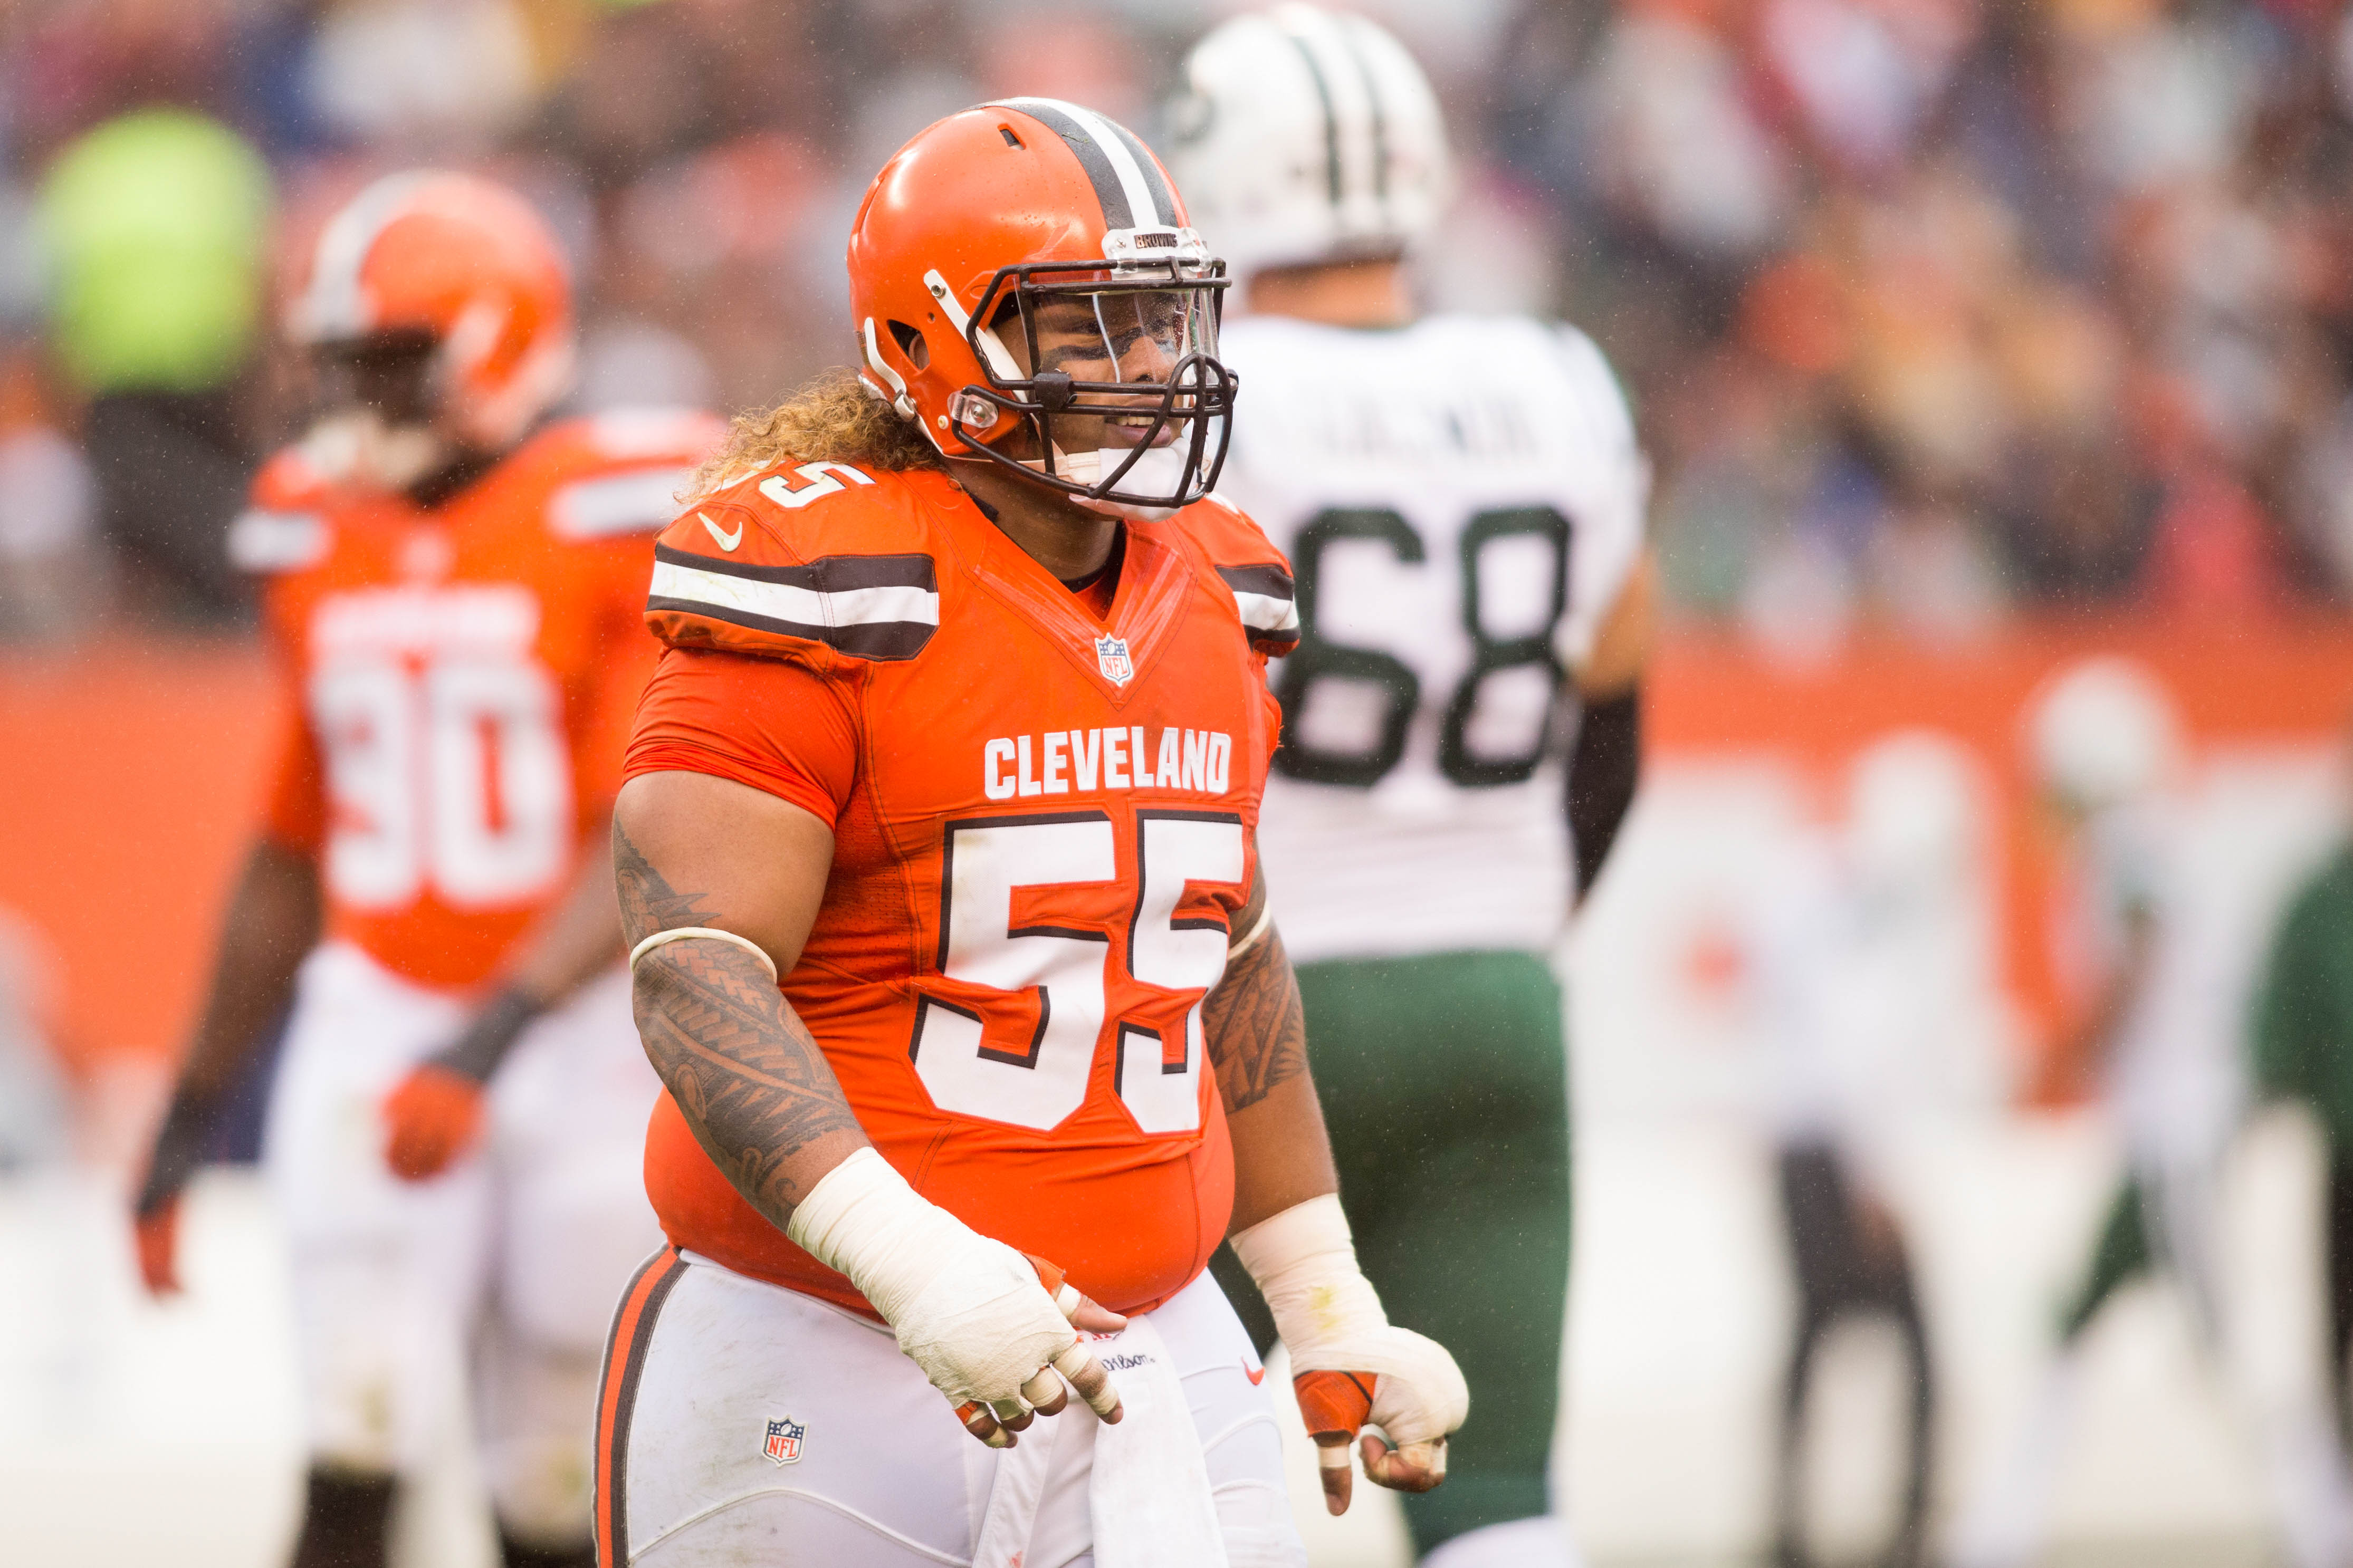 9736162-nfl-new-york-jets-at-cleveland-browns